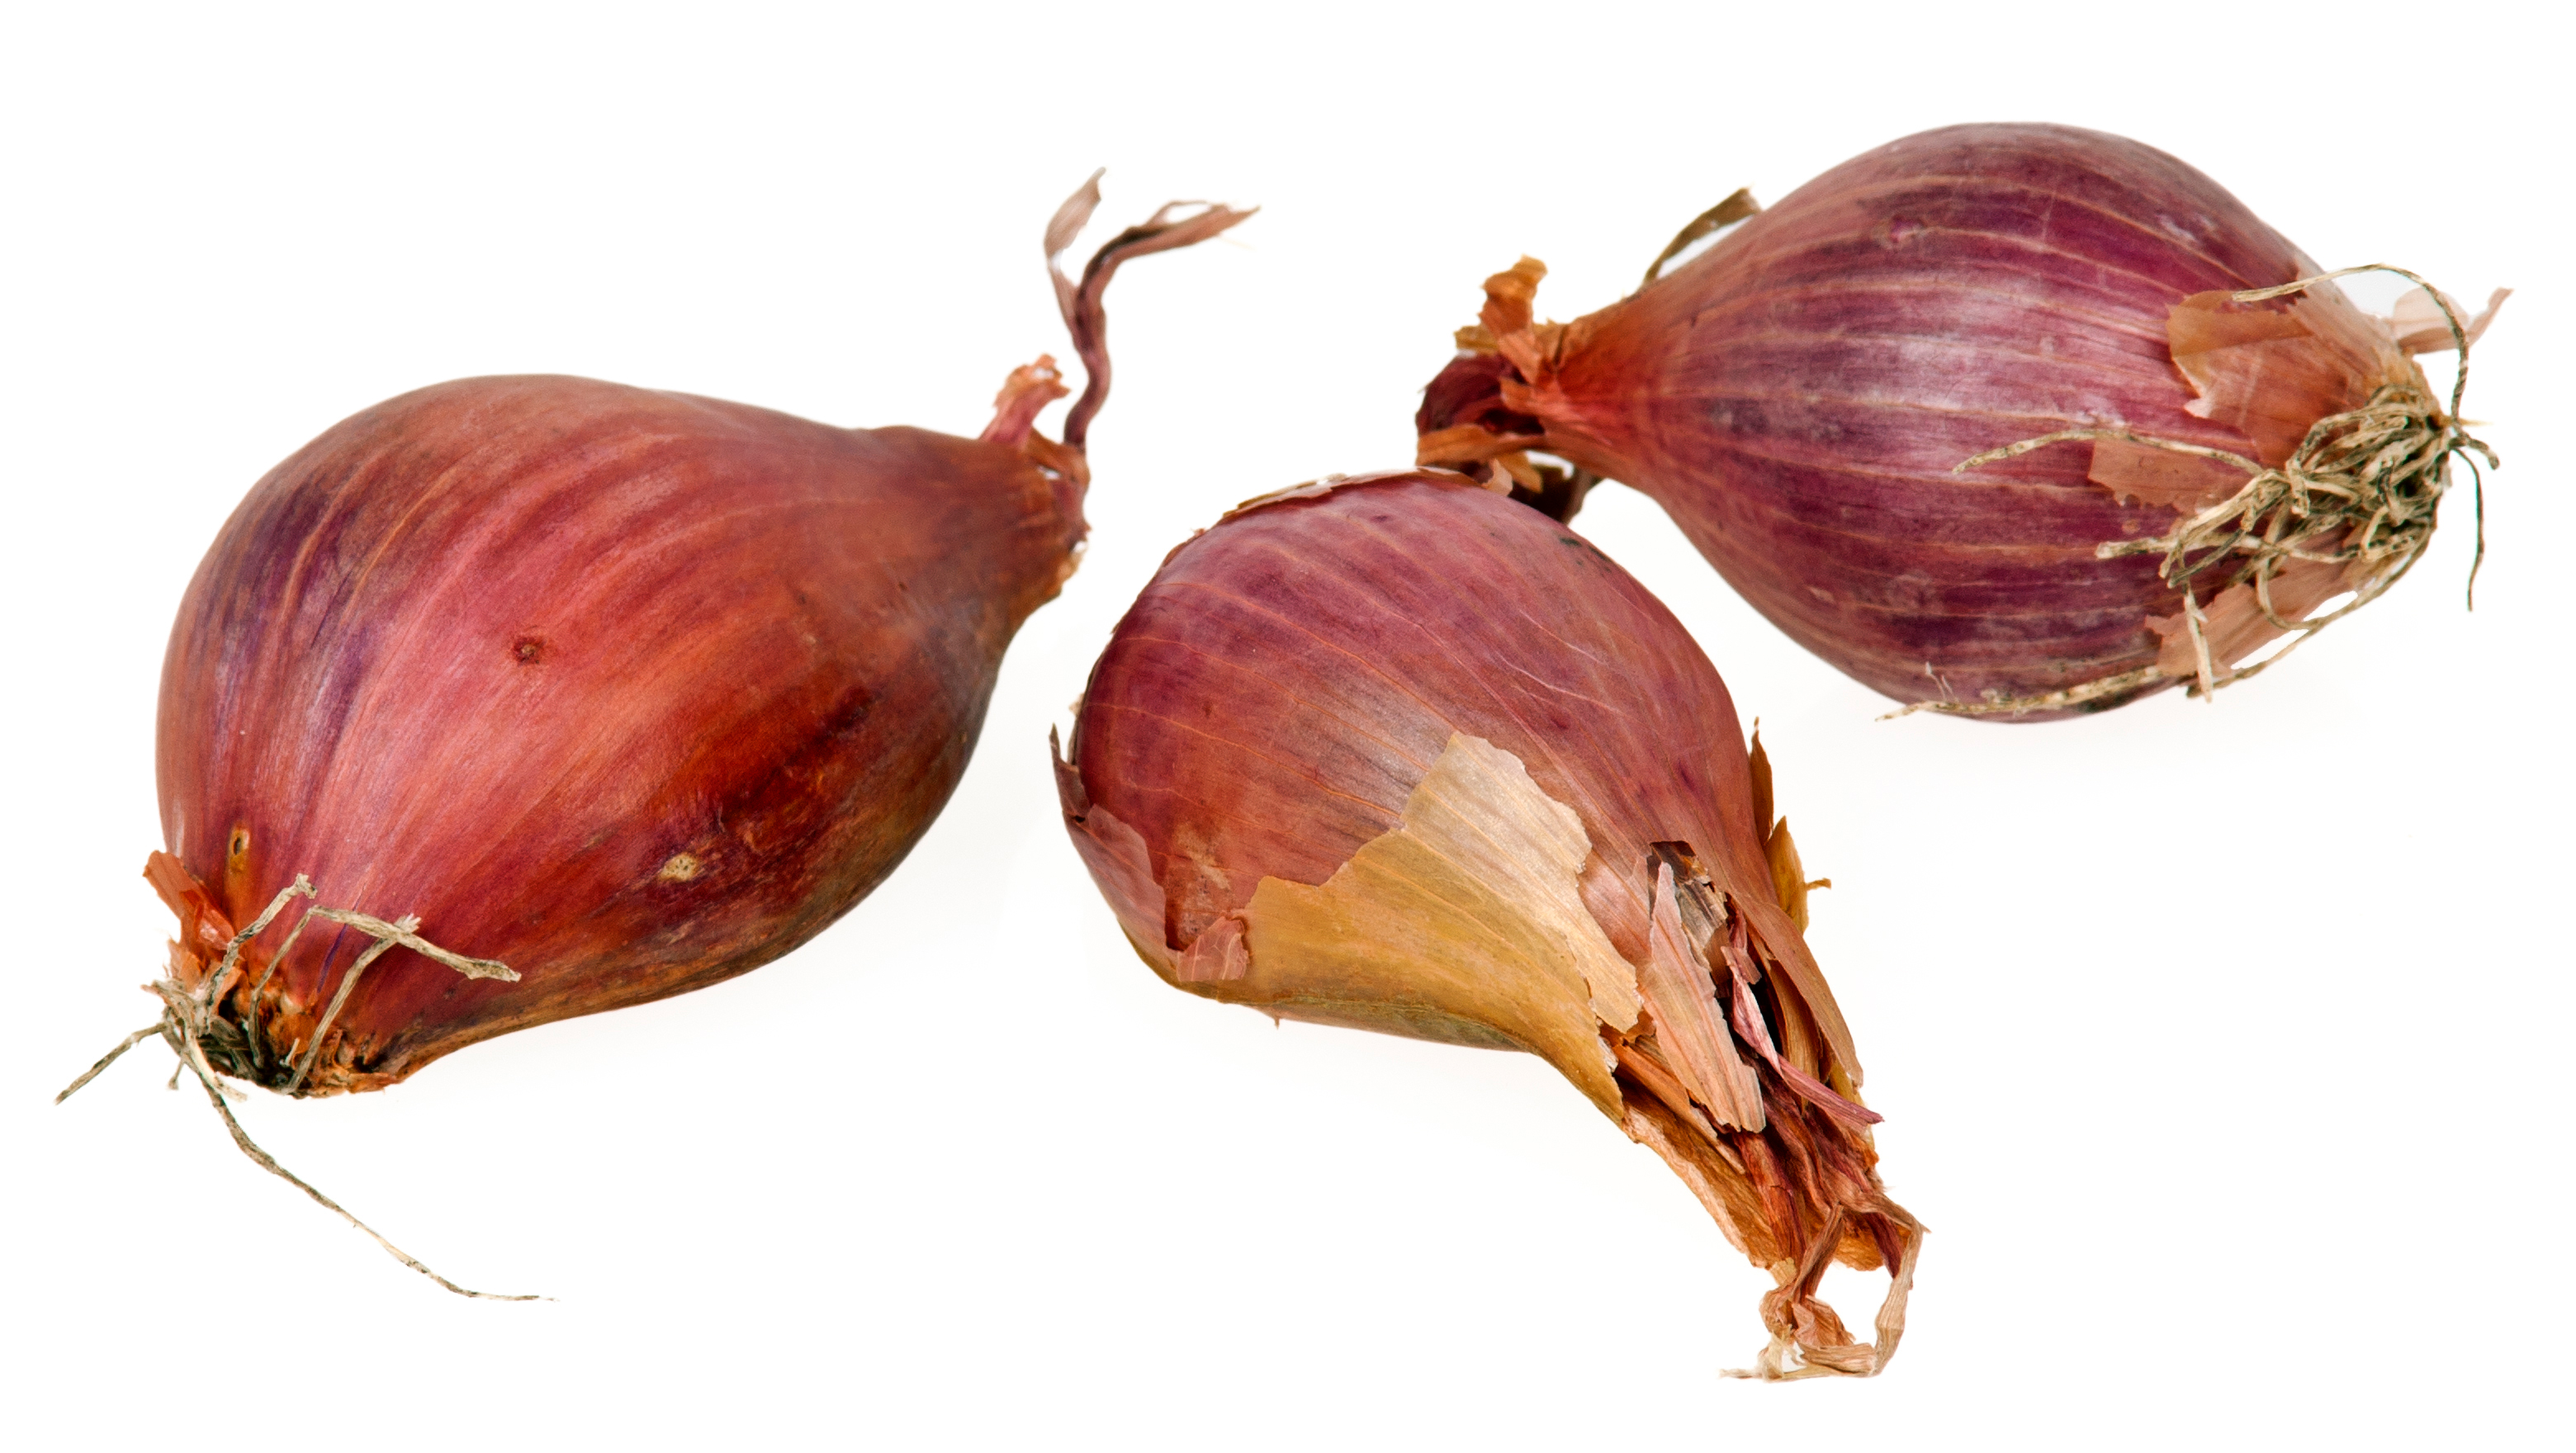 shallots facts and health benefits